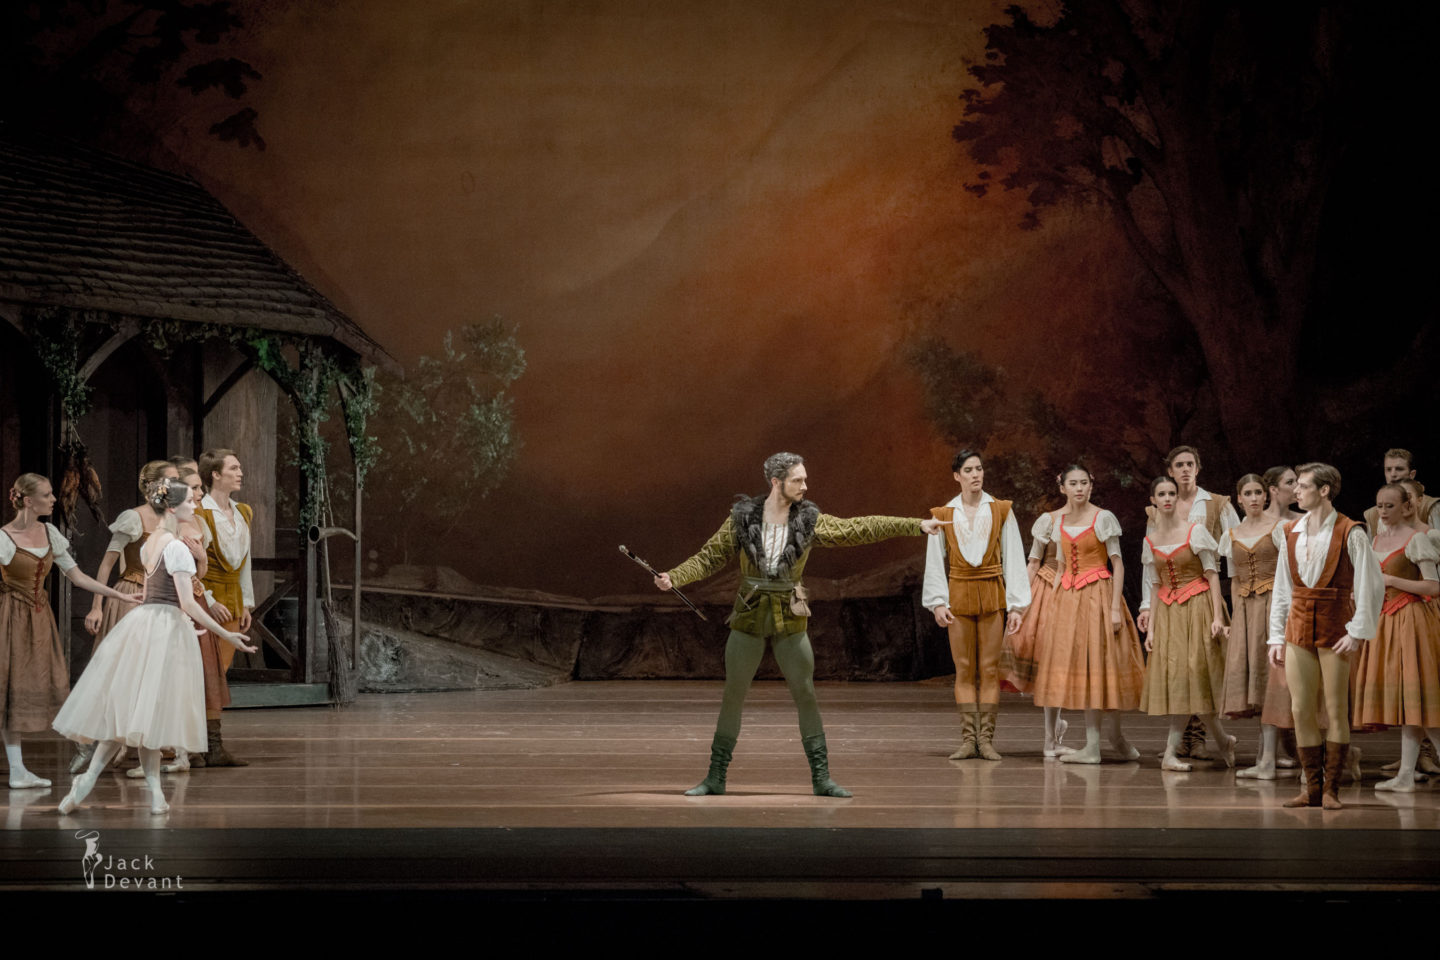 Maria Shirinkina and Vladimir Shklyarov Hilarion, Matej Urban in Giselle